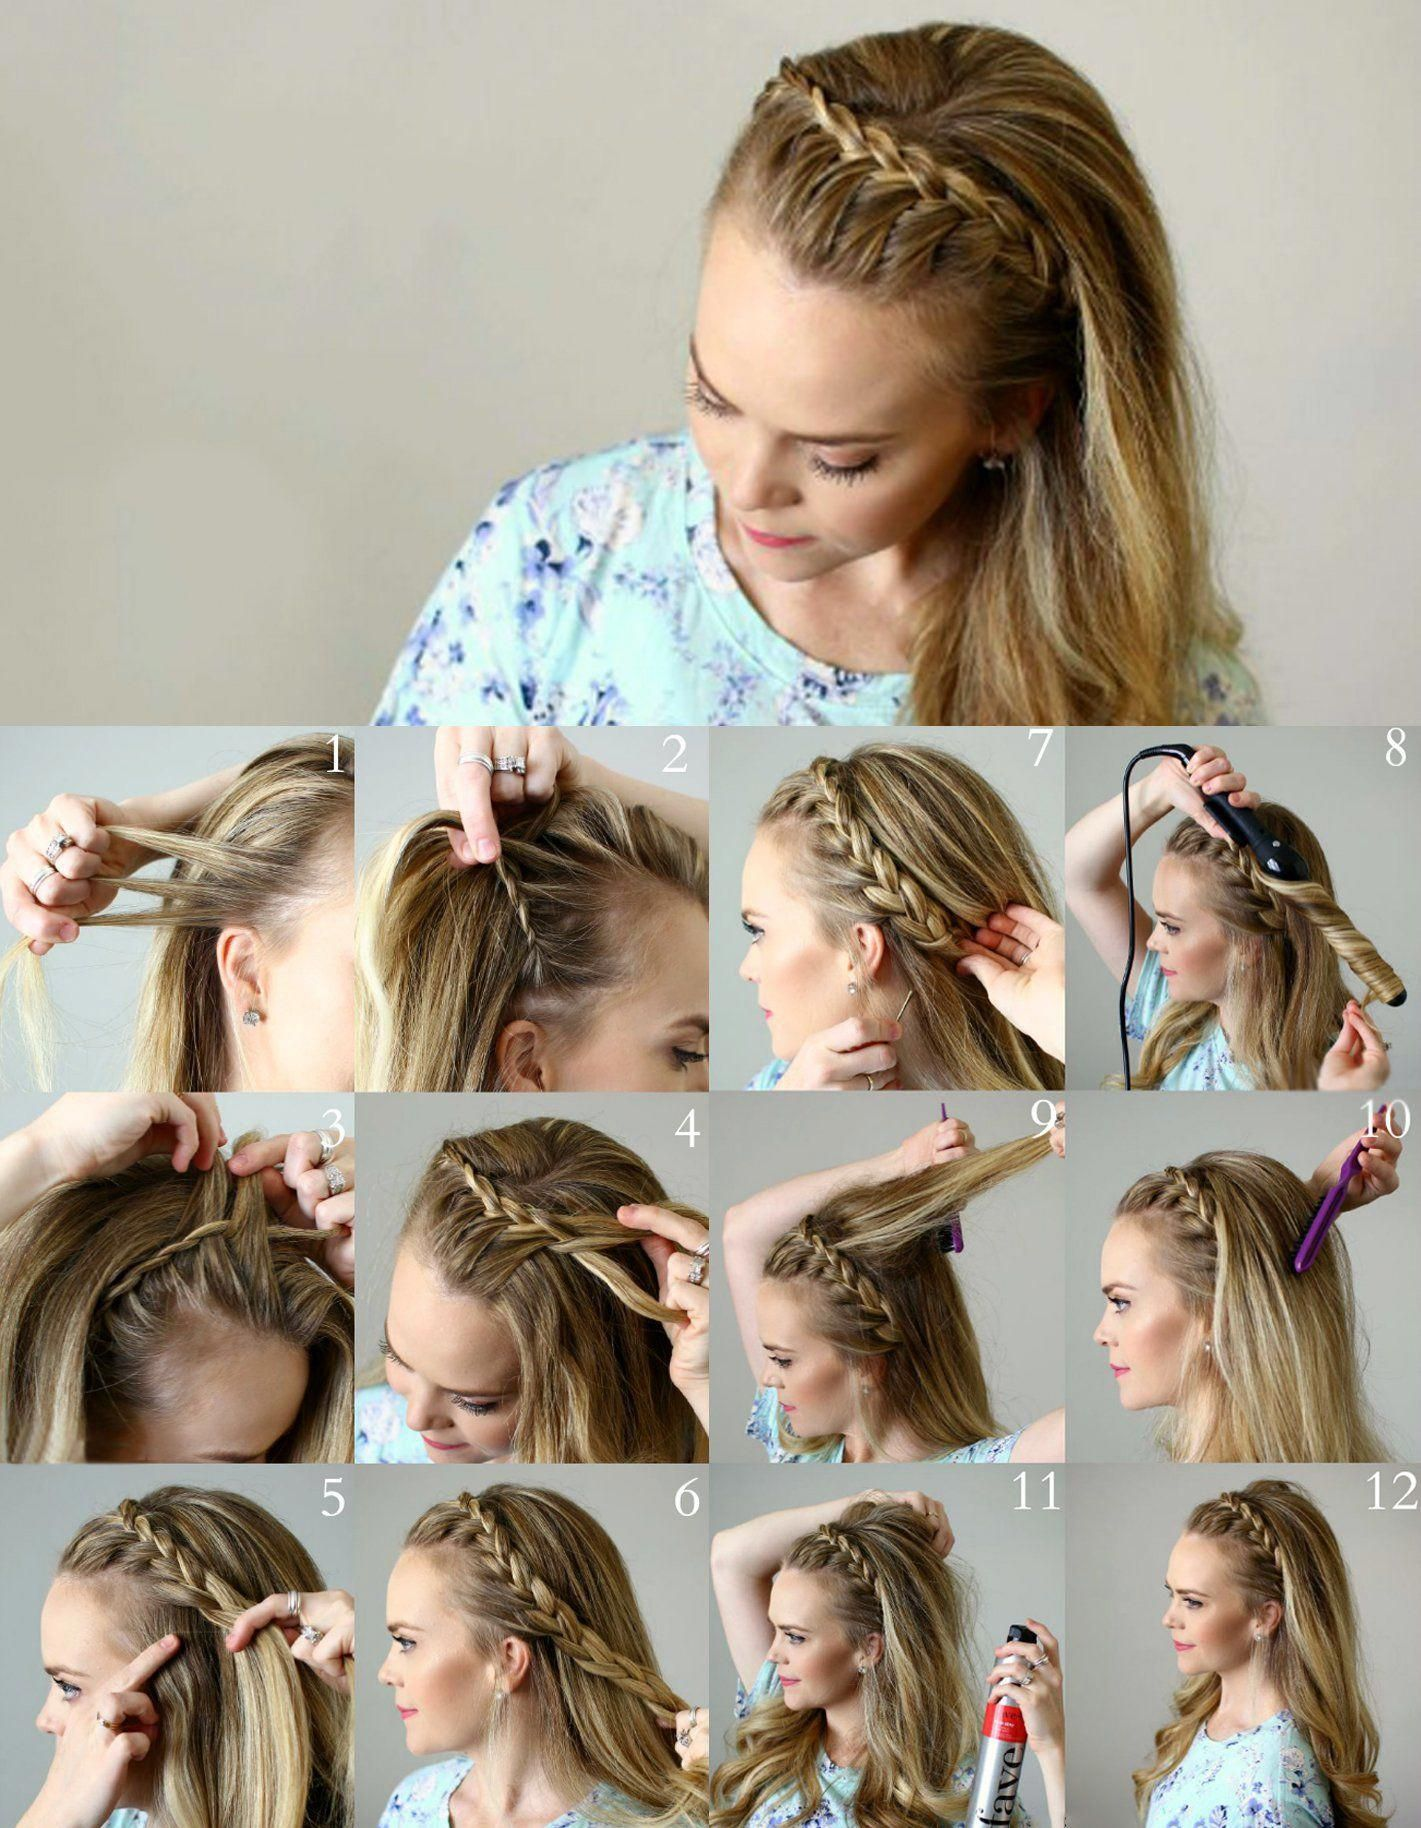 Hair Style Photo Updos For Long Hair How To Do It Yourself Ghetto Hairstyles 20190110 Hair Styles Braids For Long Hair Easy Hairstyles